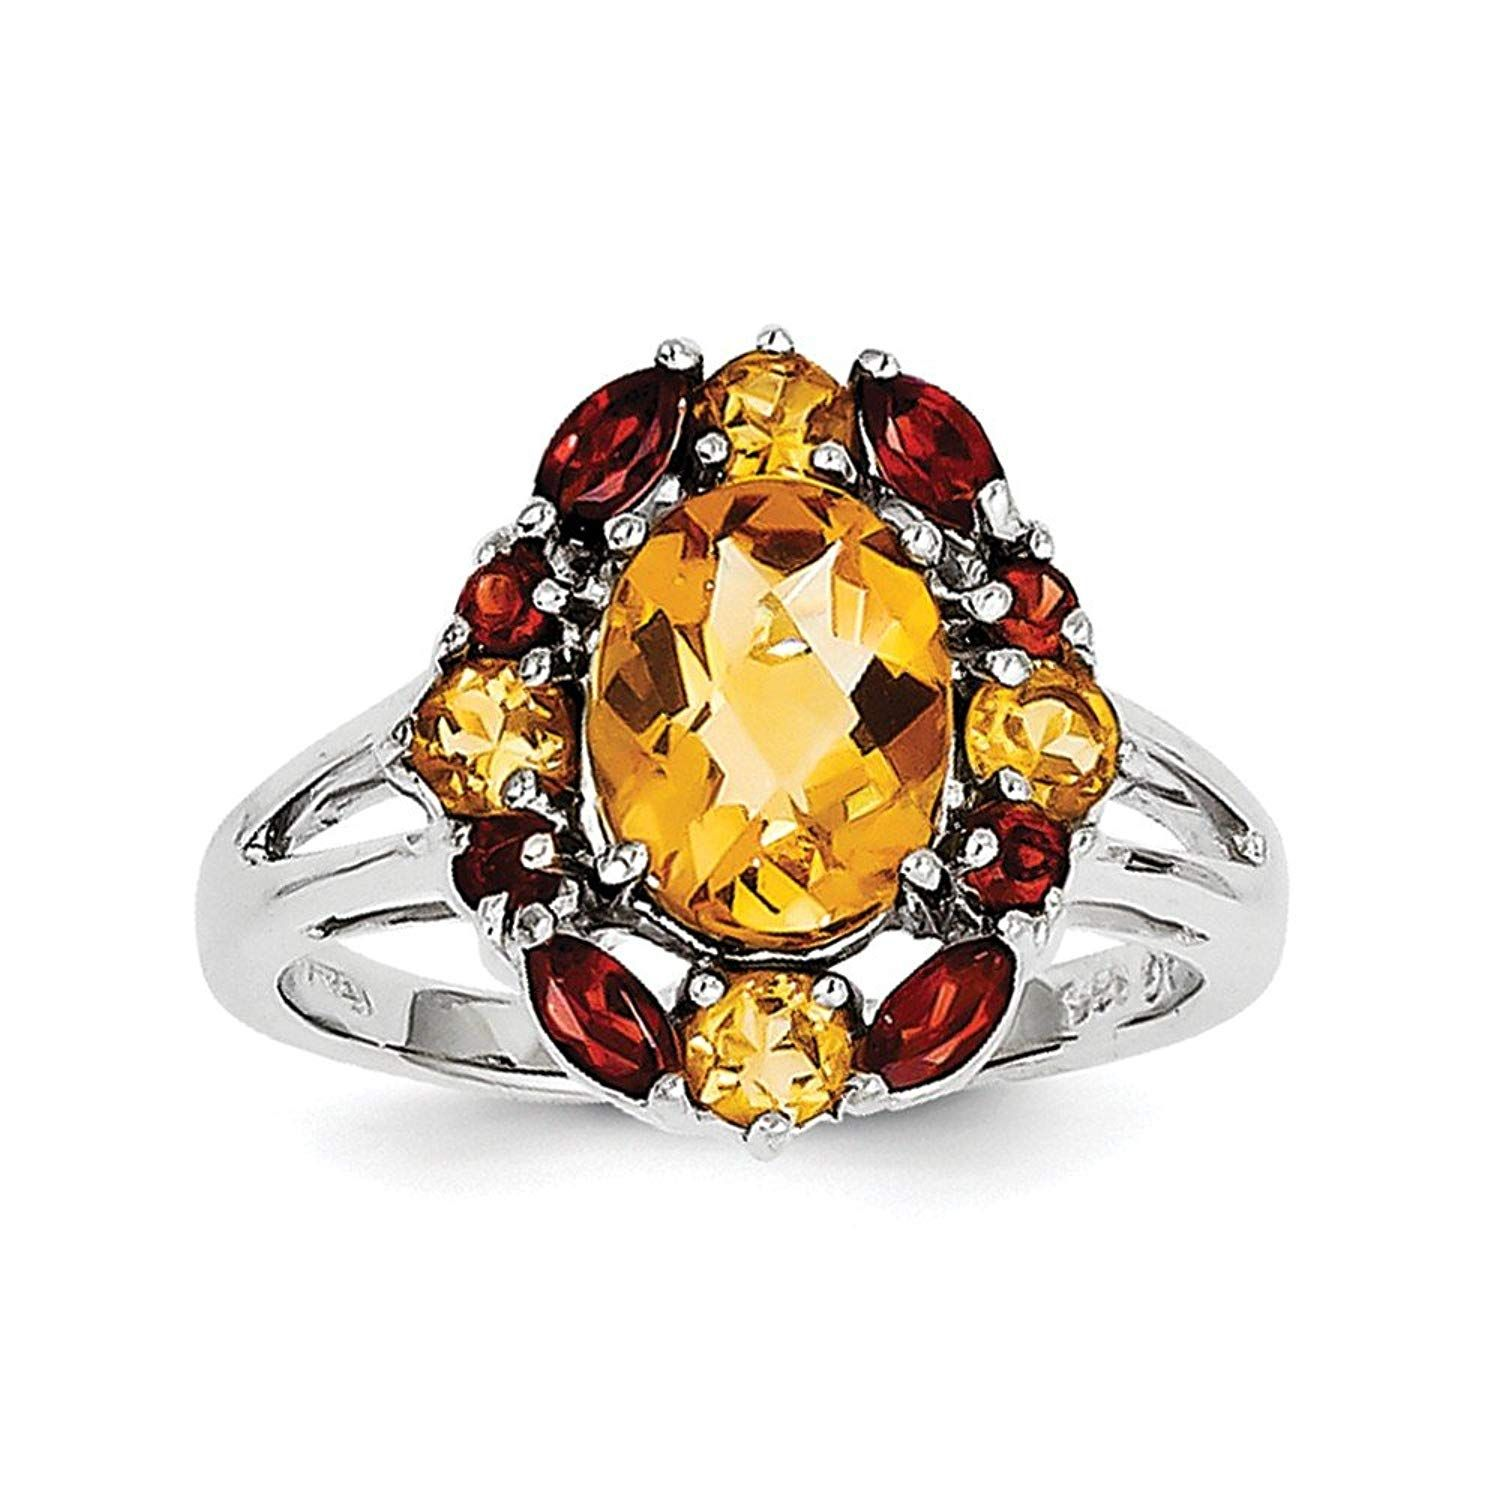 Sapphire or Emerald Lion Head Ring Set in 14K Yellow Gold Plated Silver RYLOS Amazing Conversation Starter Set with Genuine Diamond /& Gorgeous Precious Ruby